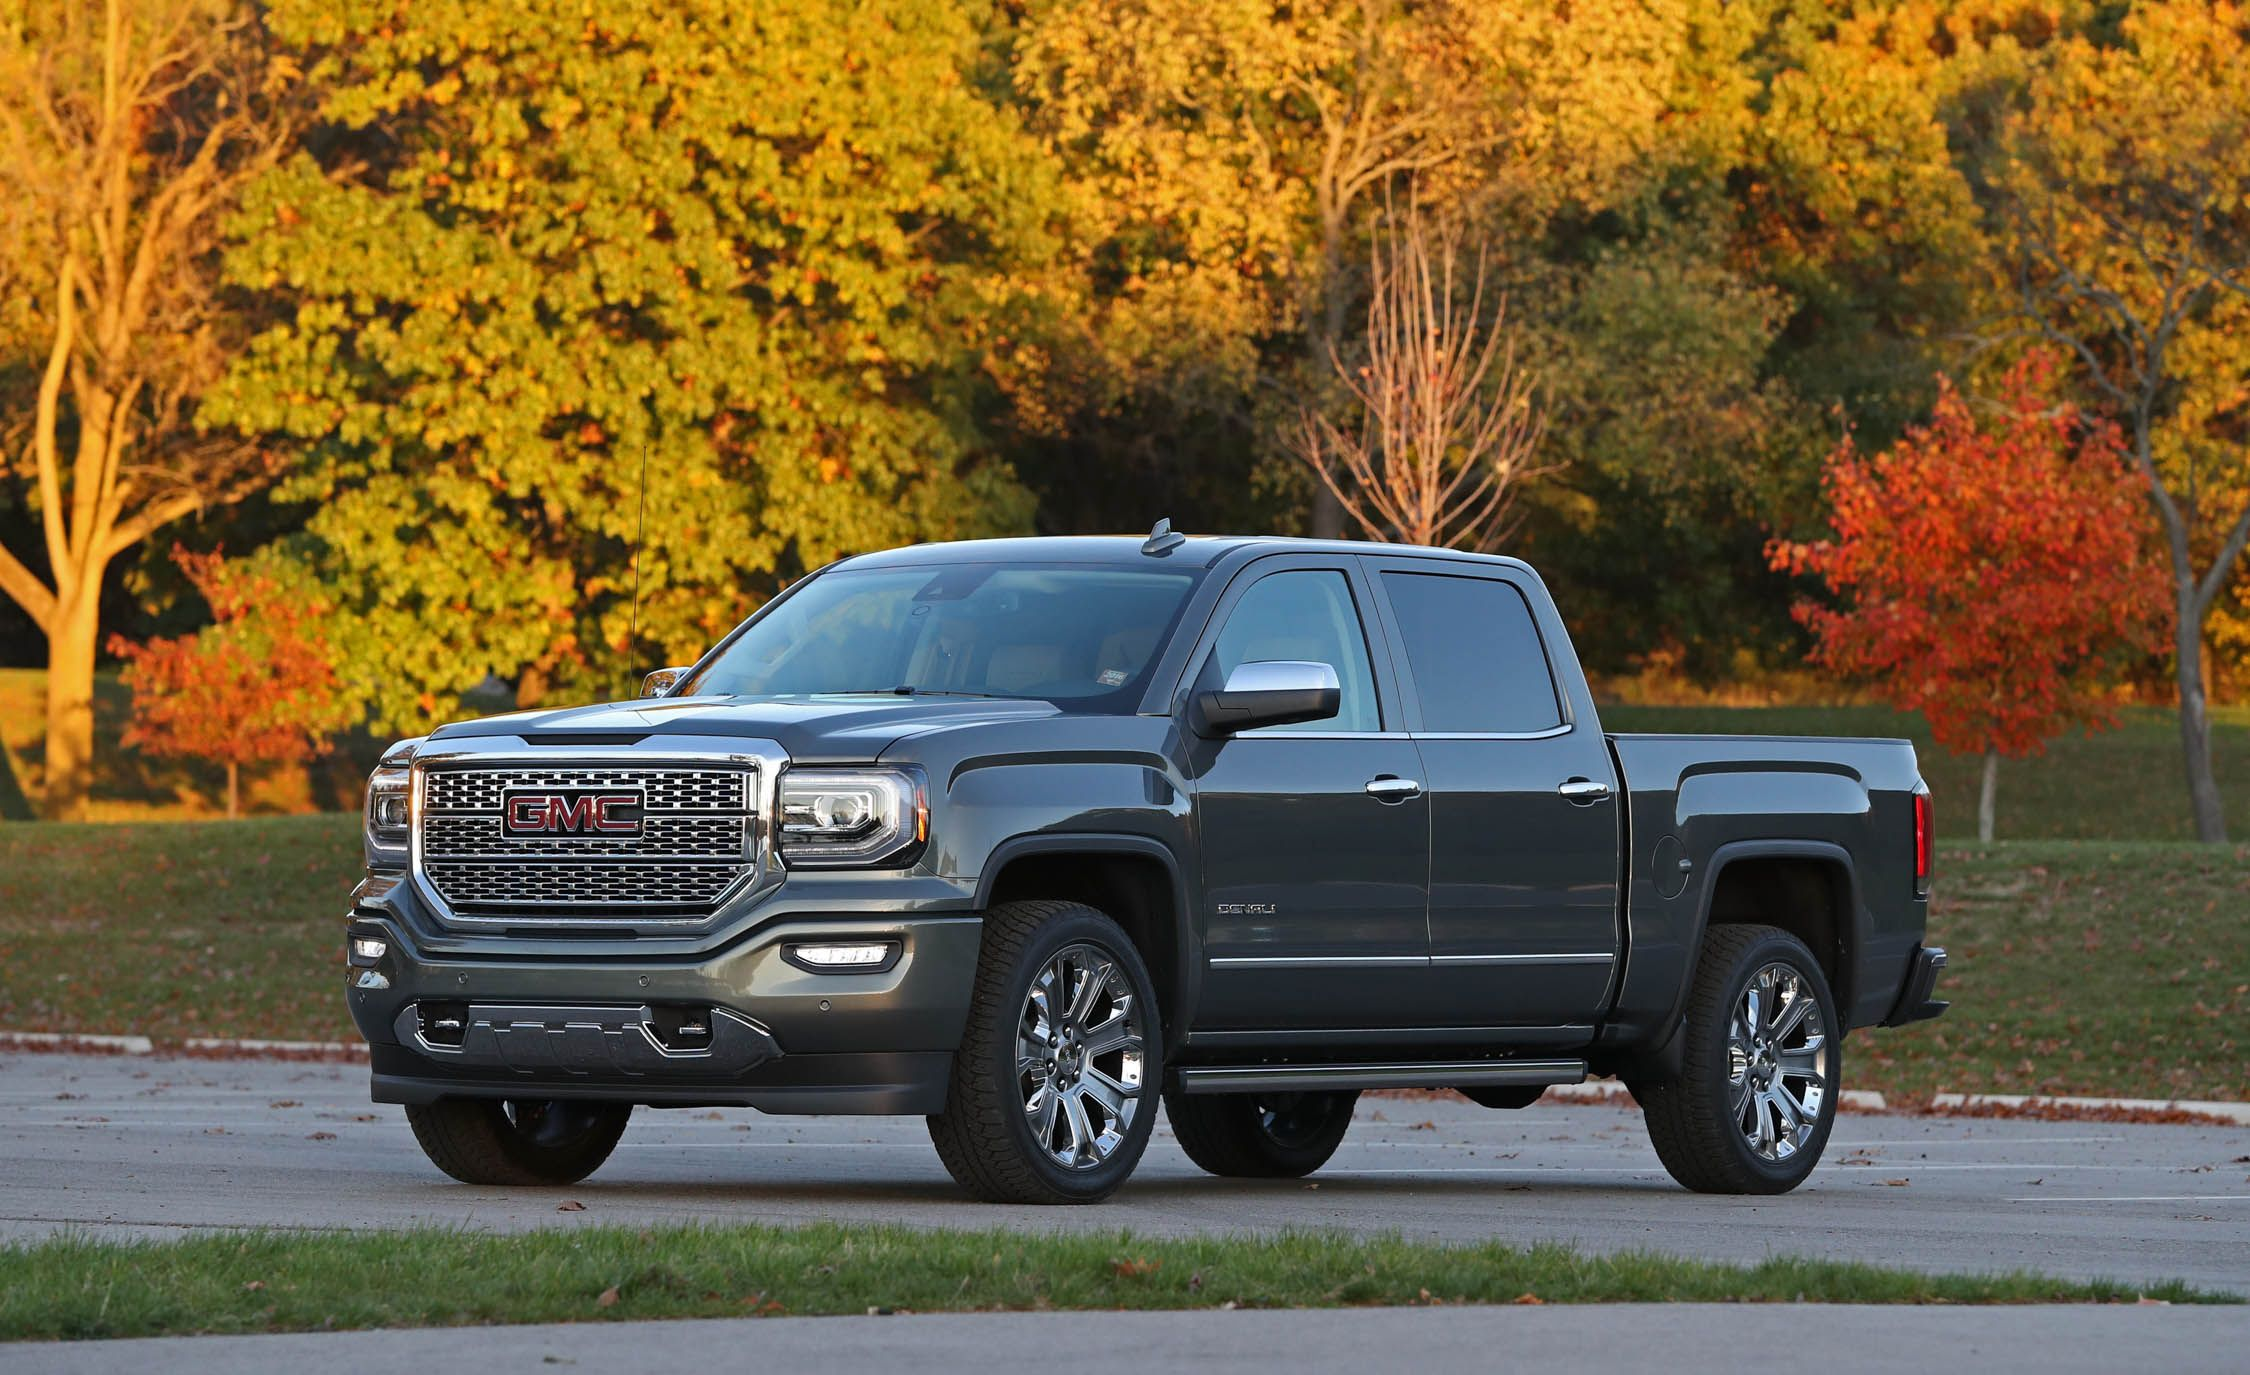 2017 GMC Sierra | Engine and Transmission Review | Car and ...